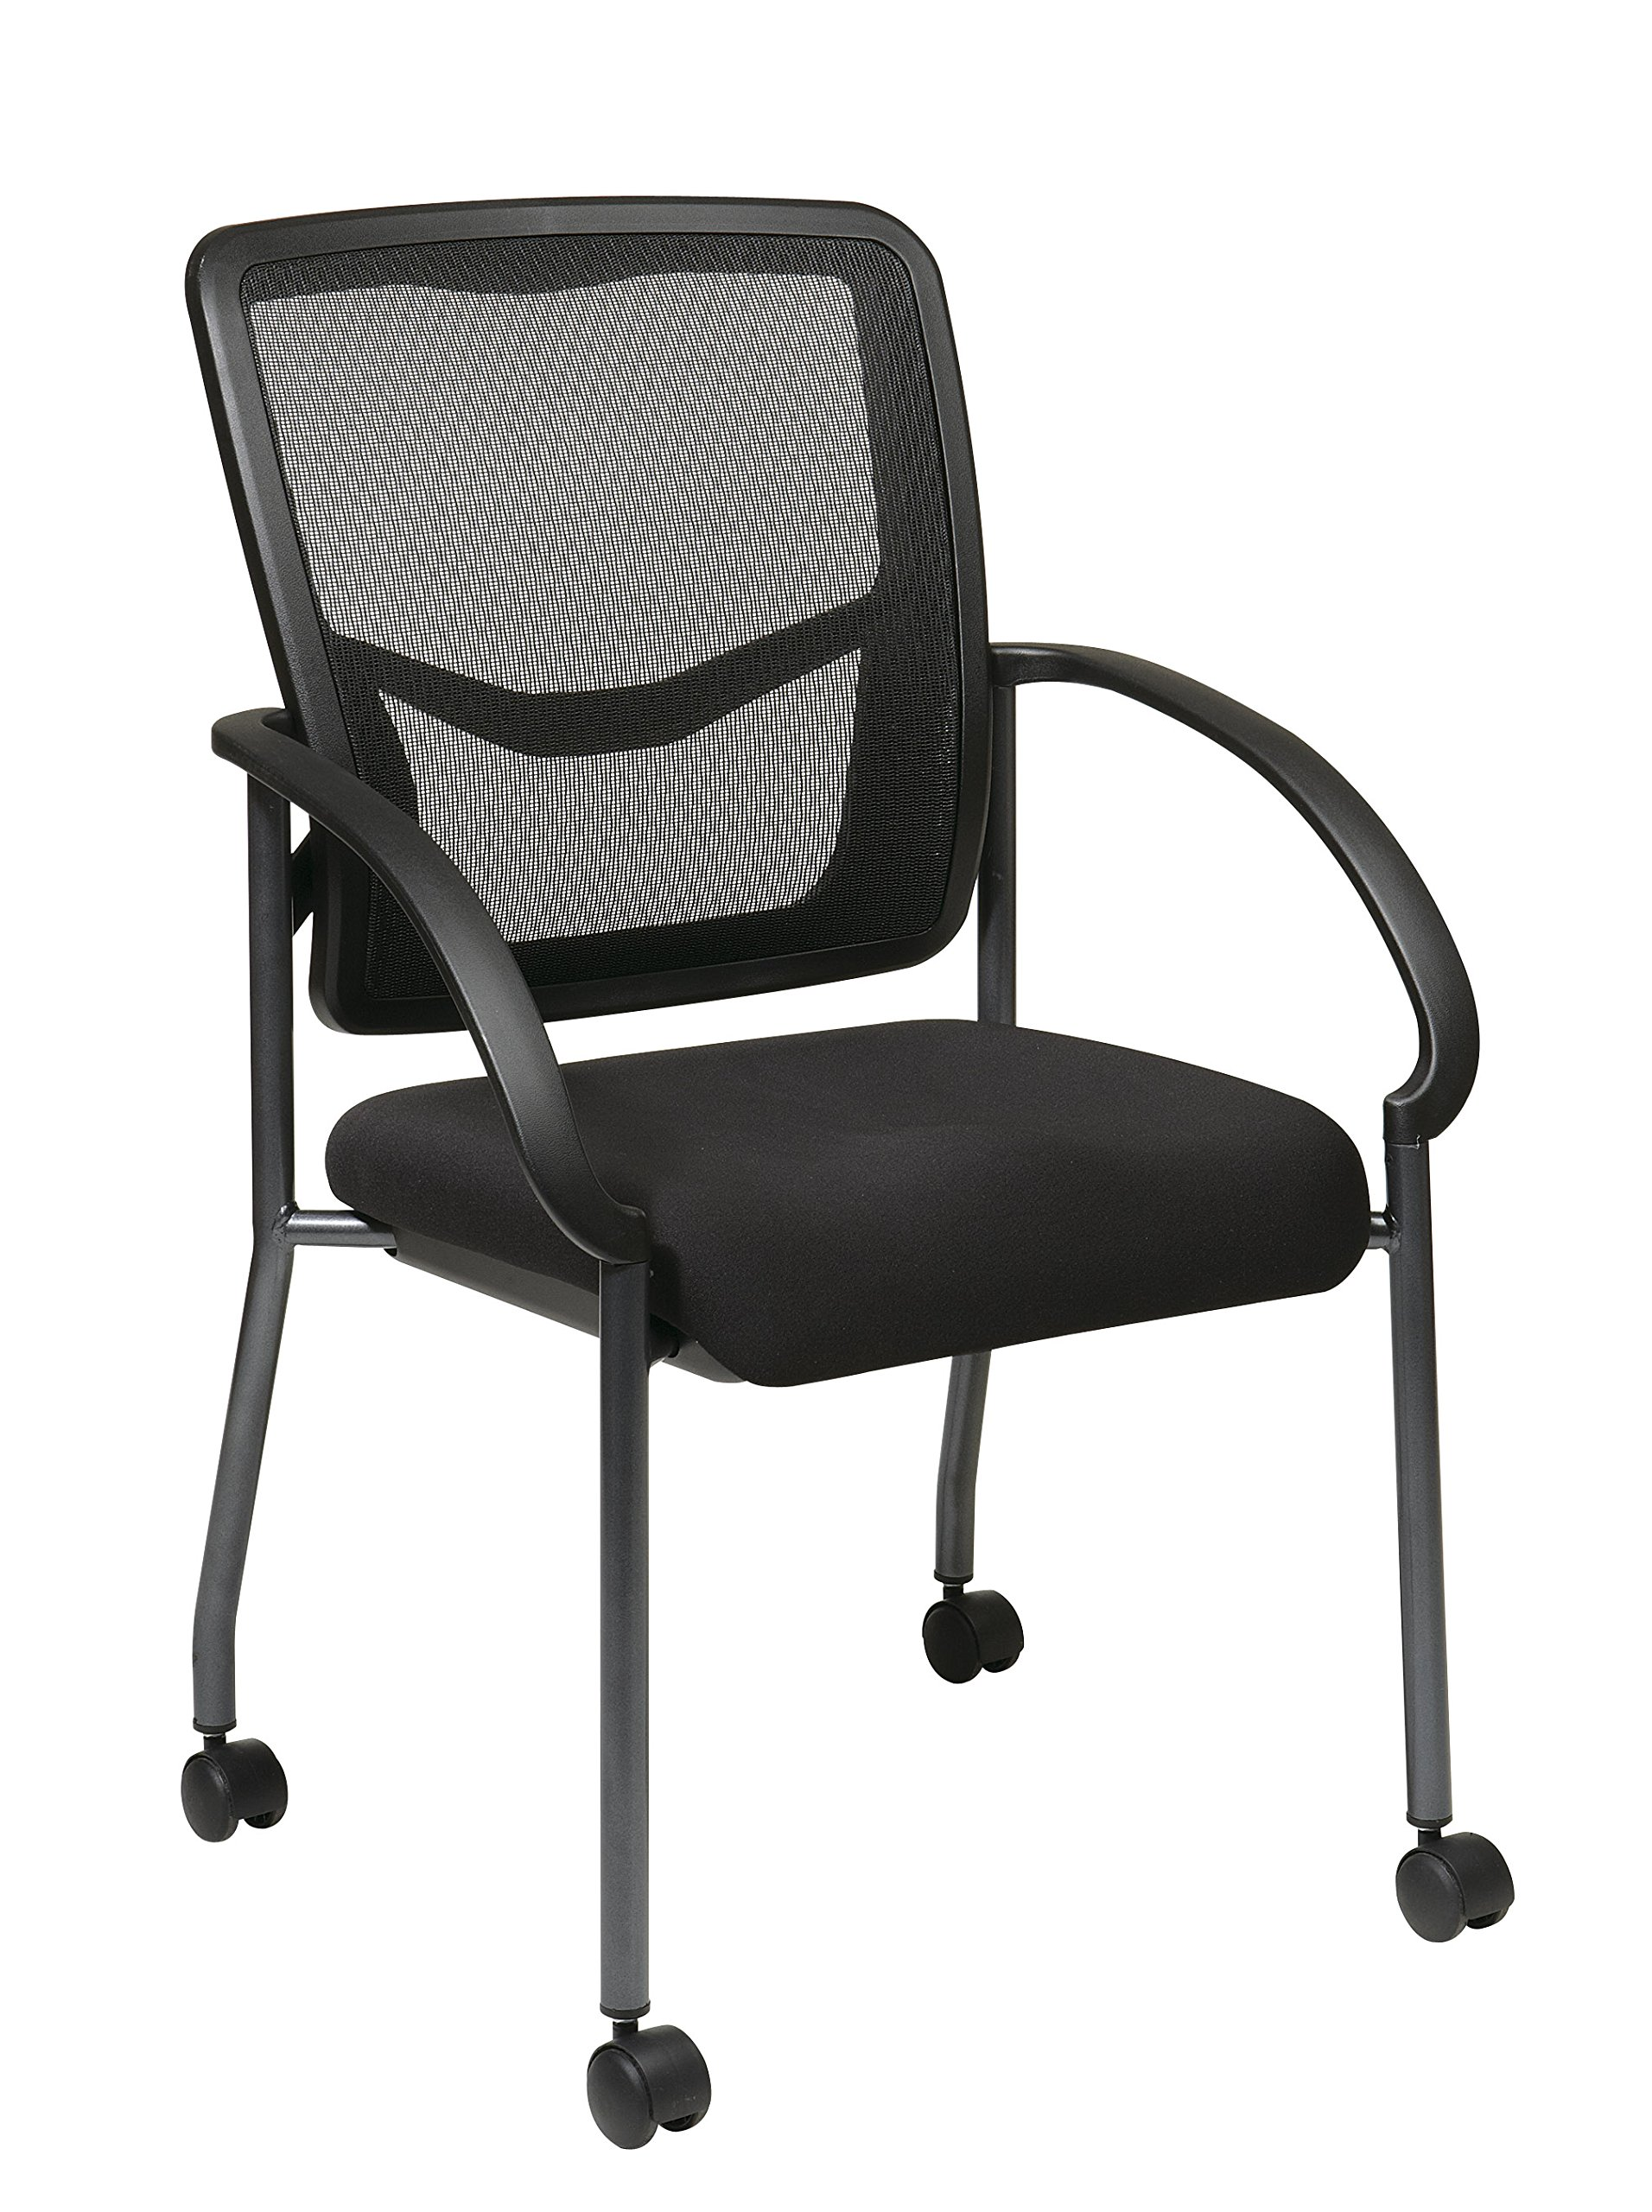 Office Star Breathable ProGrid Back and Padded Coal FreeFlex Seat, Contour Arms, Titanium Finish Stacking Visitors Chair with Casters, Black by Office Star